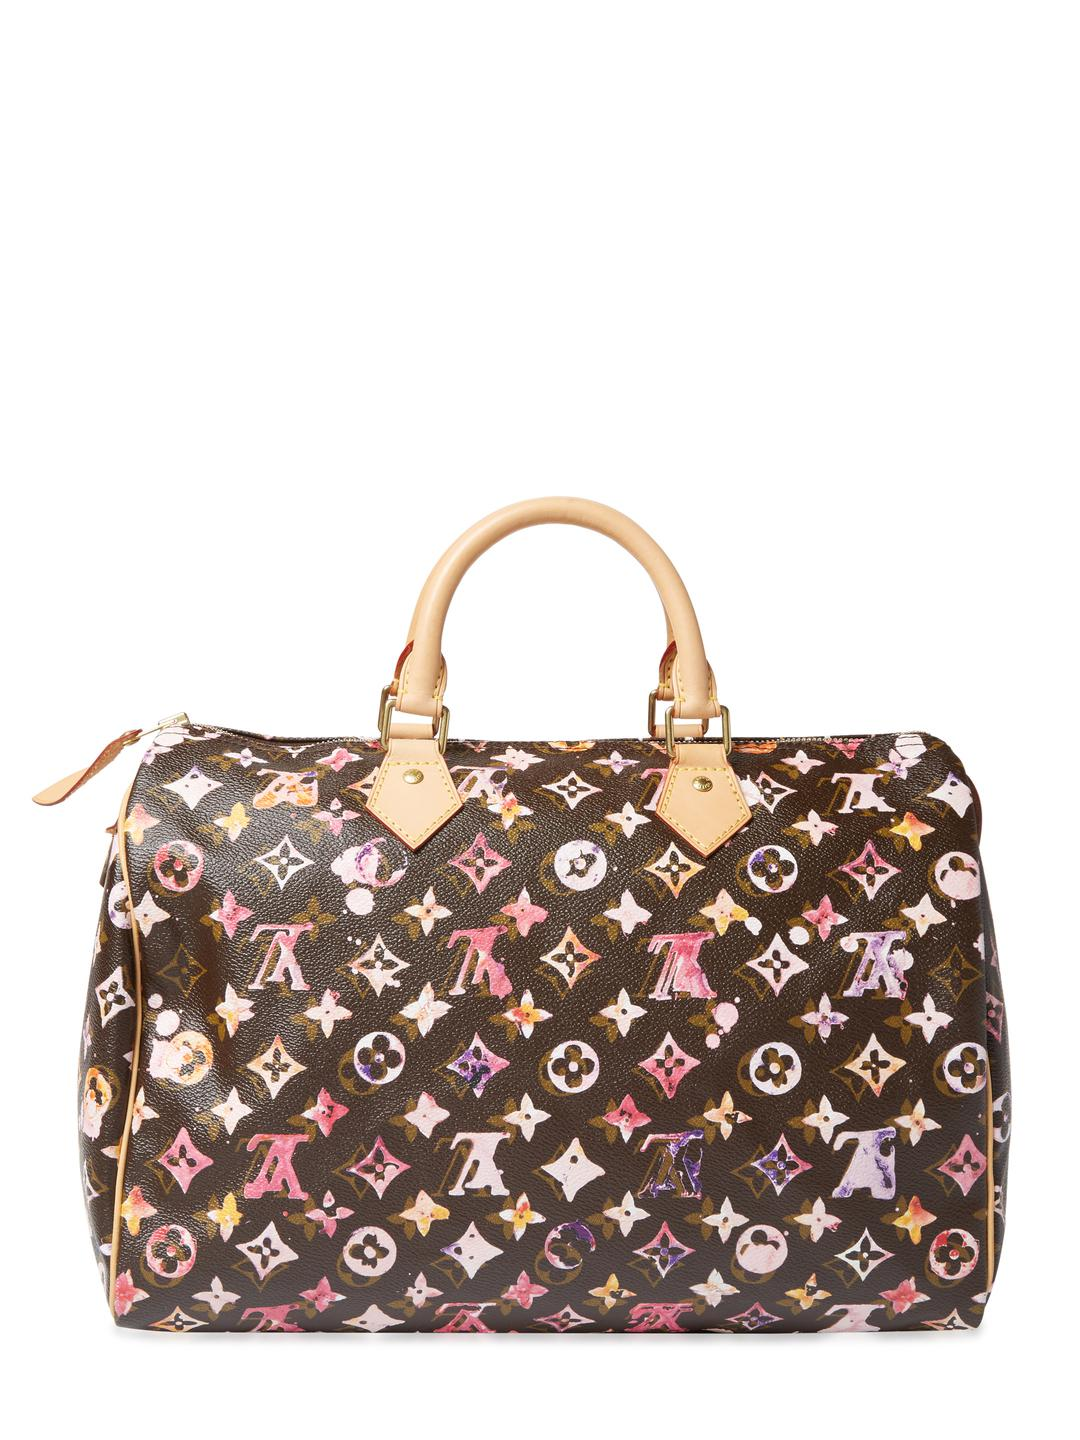 16008305fa56 Louis Vuitton Vintage X Richard Prince Monogram Aquarelle Speedy 25 ...